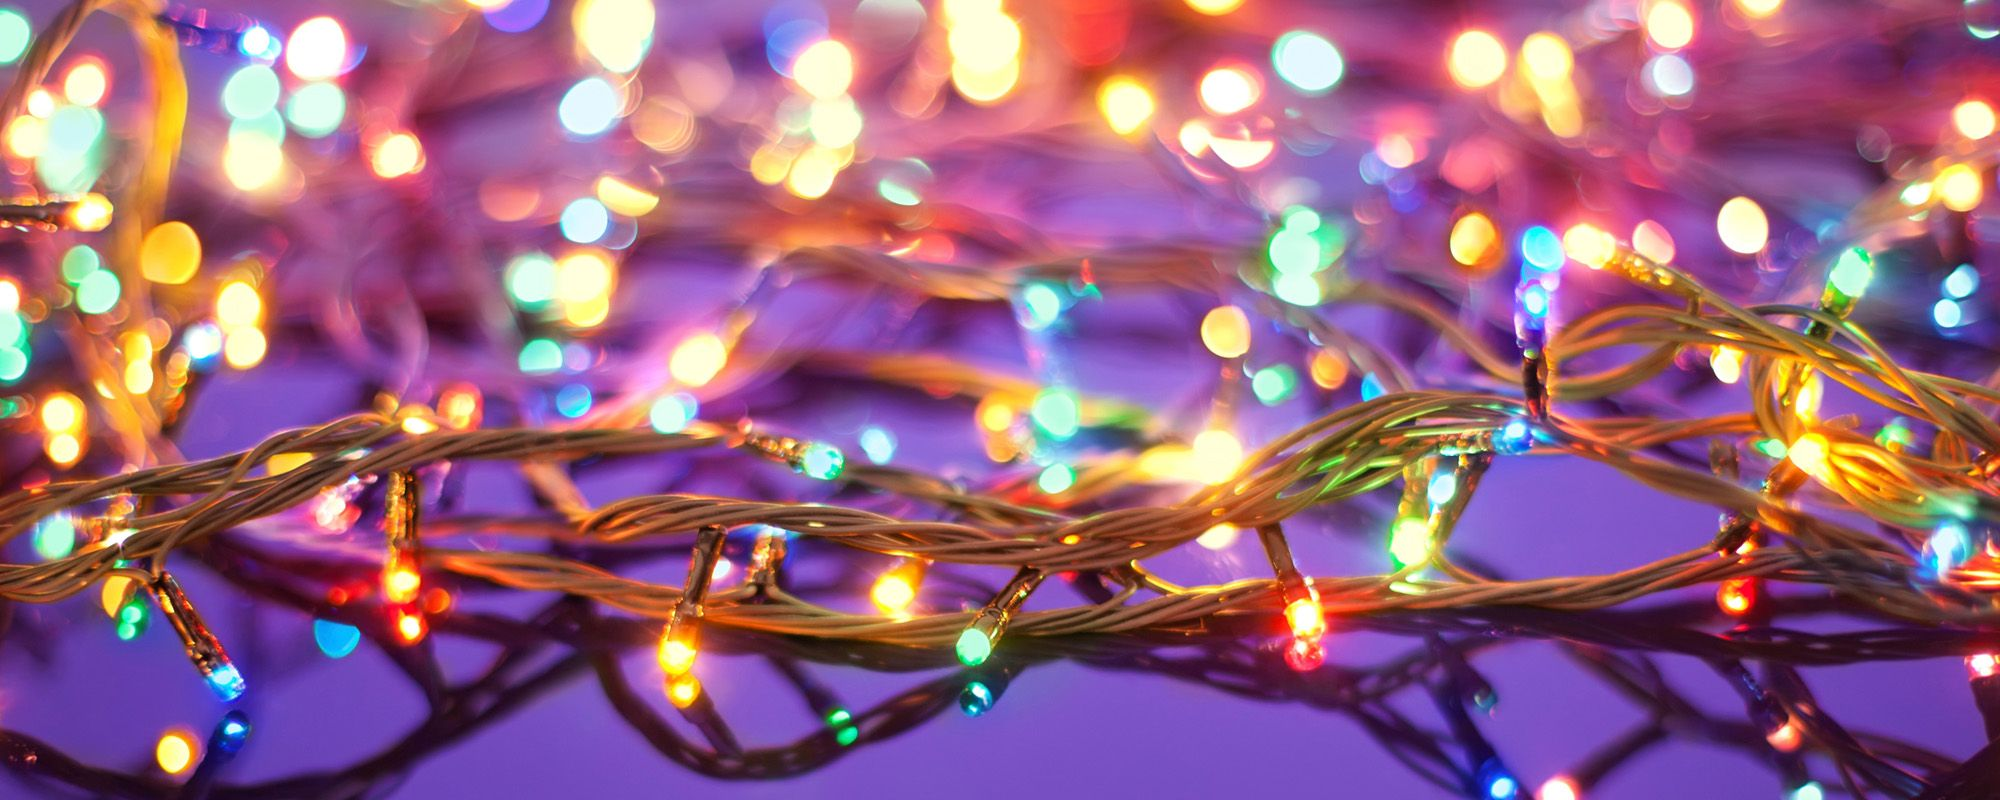 Colourful christmas lights